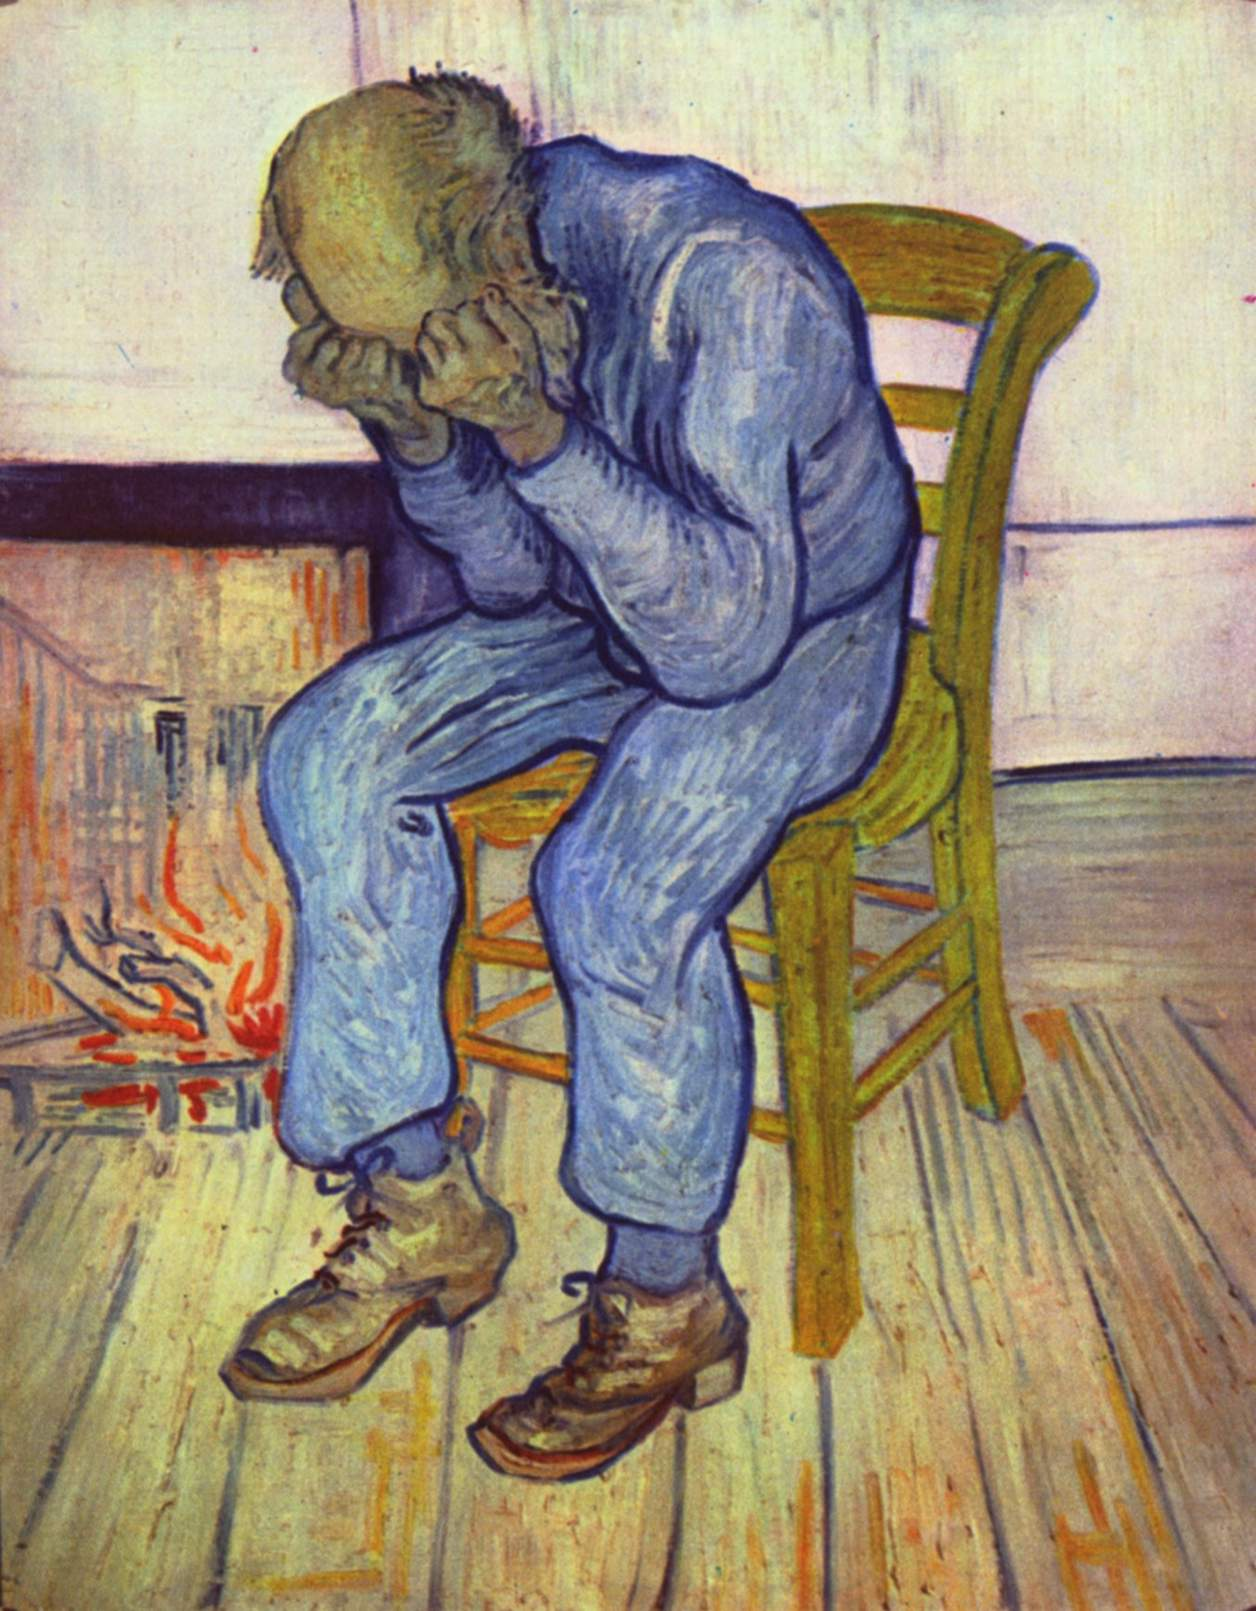 Yi Wei Lim, yiweilim, talking about mental illness, mental illness, vincent van gogh, van gogh, sorrowing old man, vincent van gogh old man with head in hands, van gogh old man with head in hands, depression, grief, painting